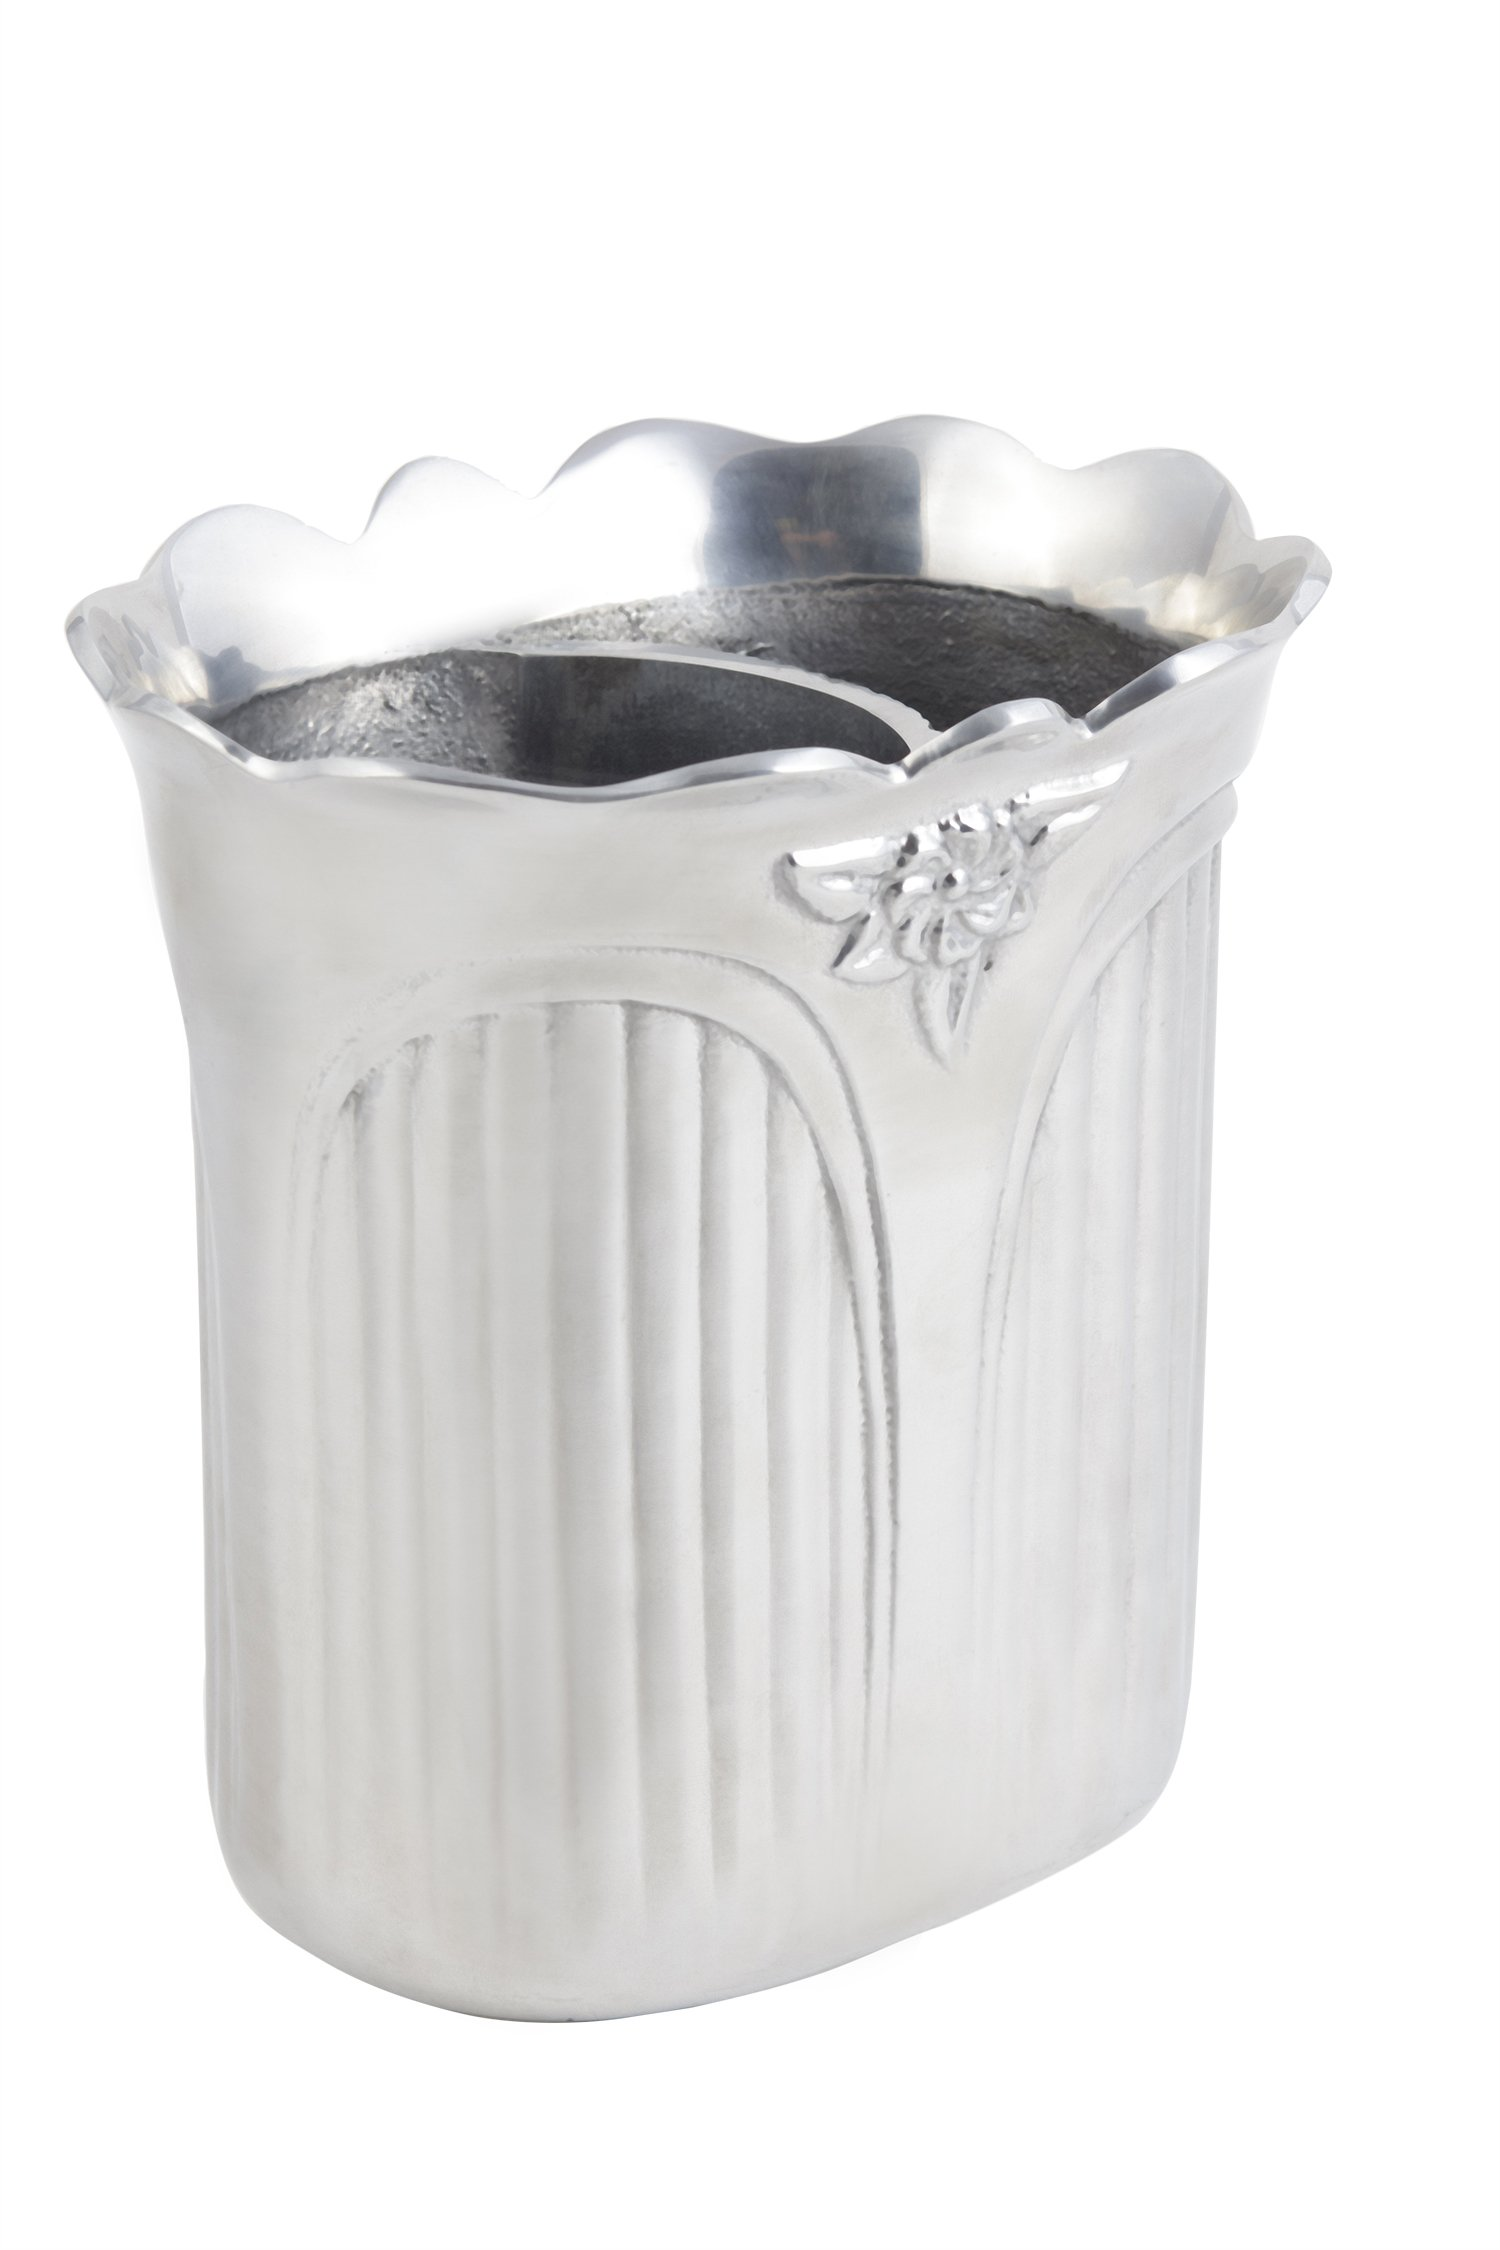 Bon Chef 4027PG Aluminum/Pewter Glo Victorian Wine Cooler, 7-1/4'' Length x 5-5/8'' Width x 8'' Height